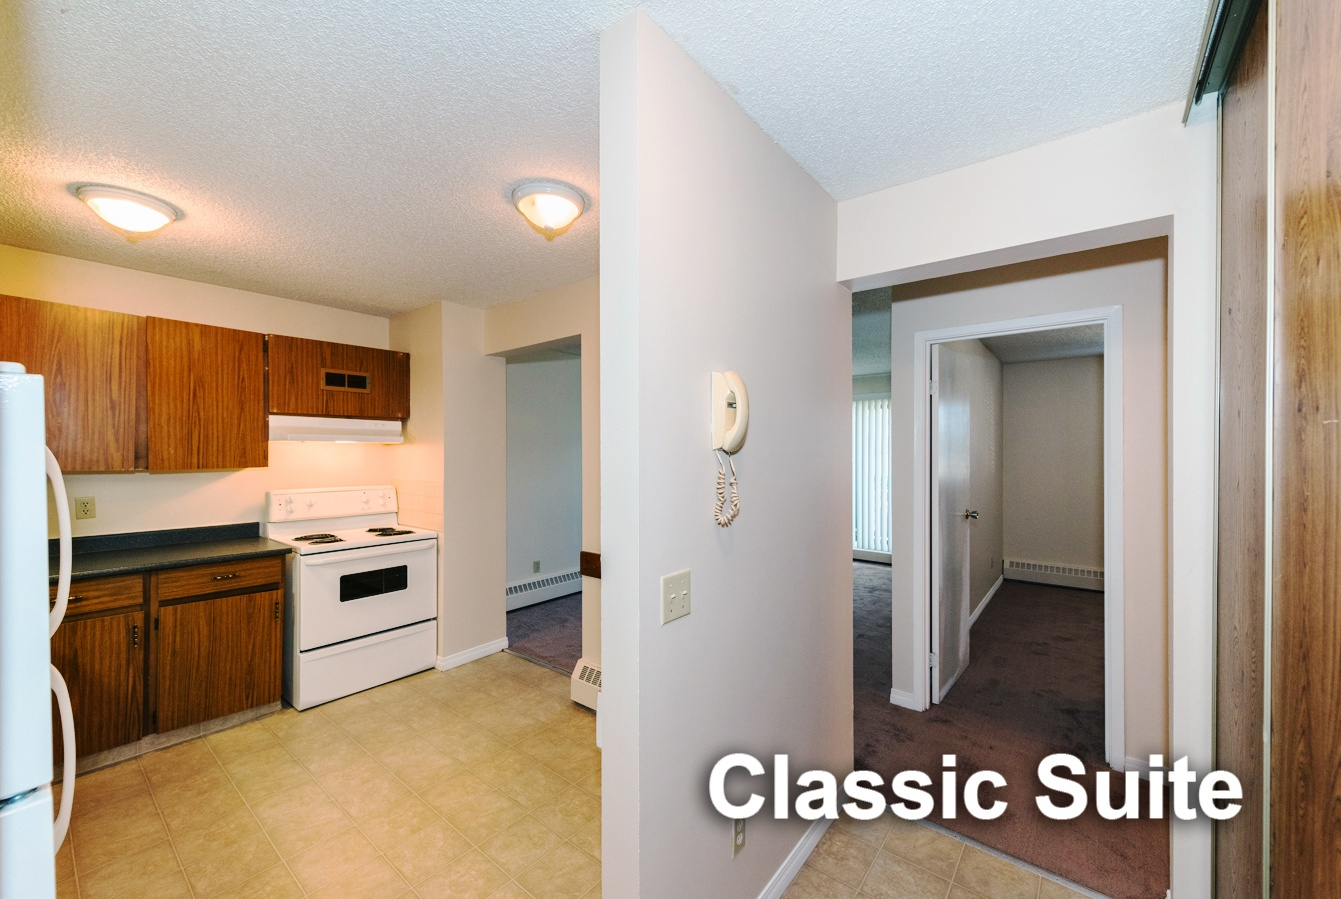 Low-Rise Apartment for rent at 6209 - 60 St, Red Deer, AB. Taylor Heights Apartments